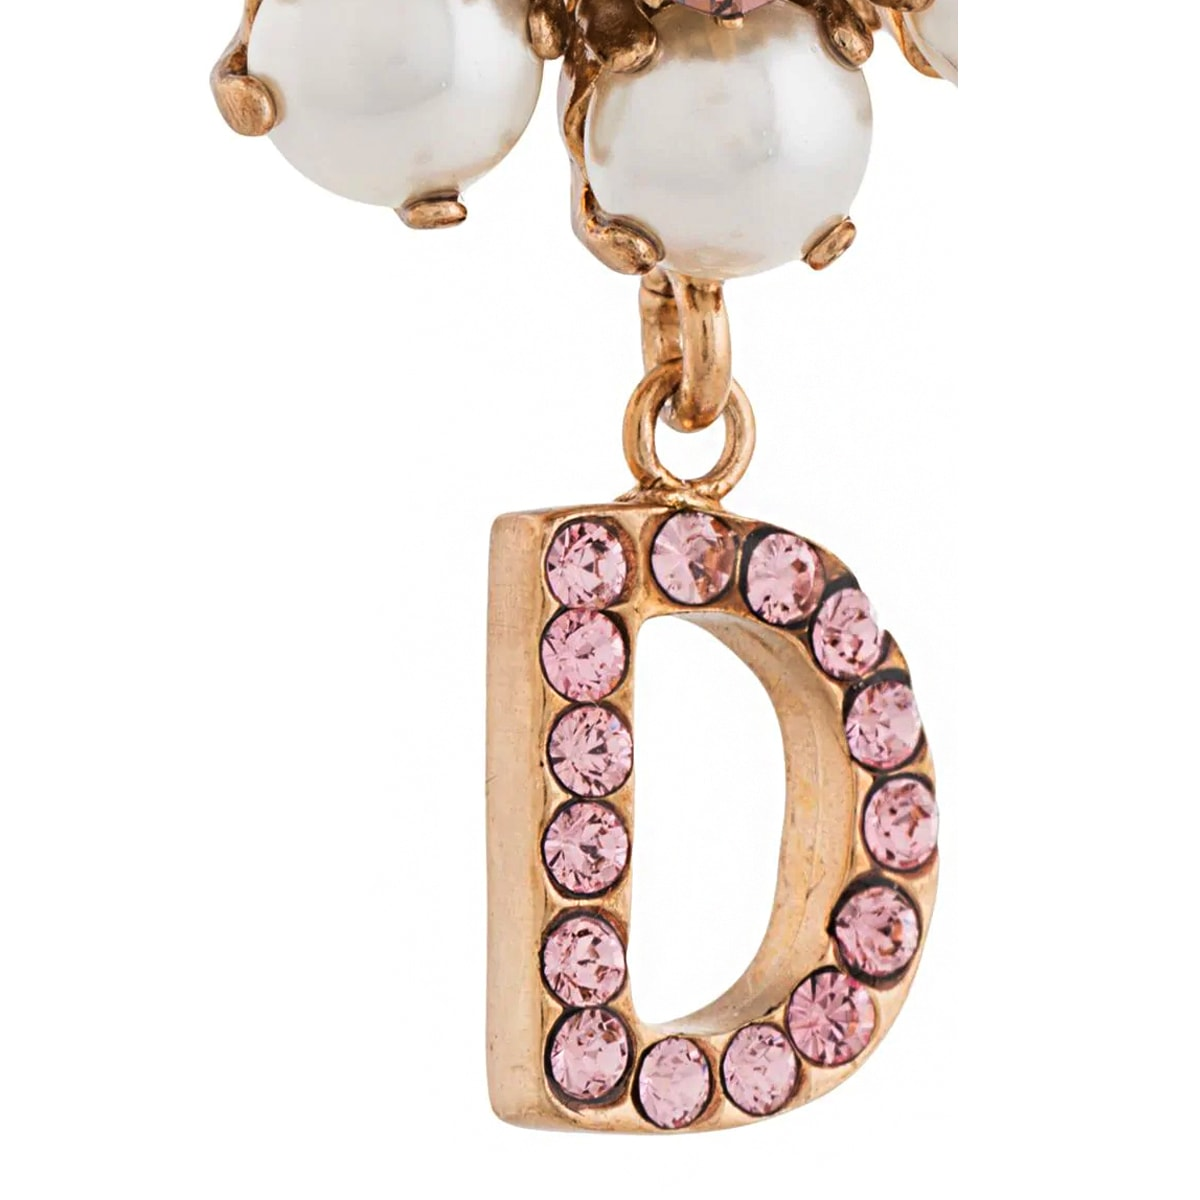 DG embellished earrings